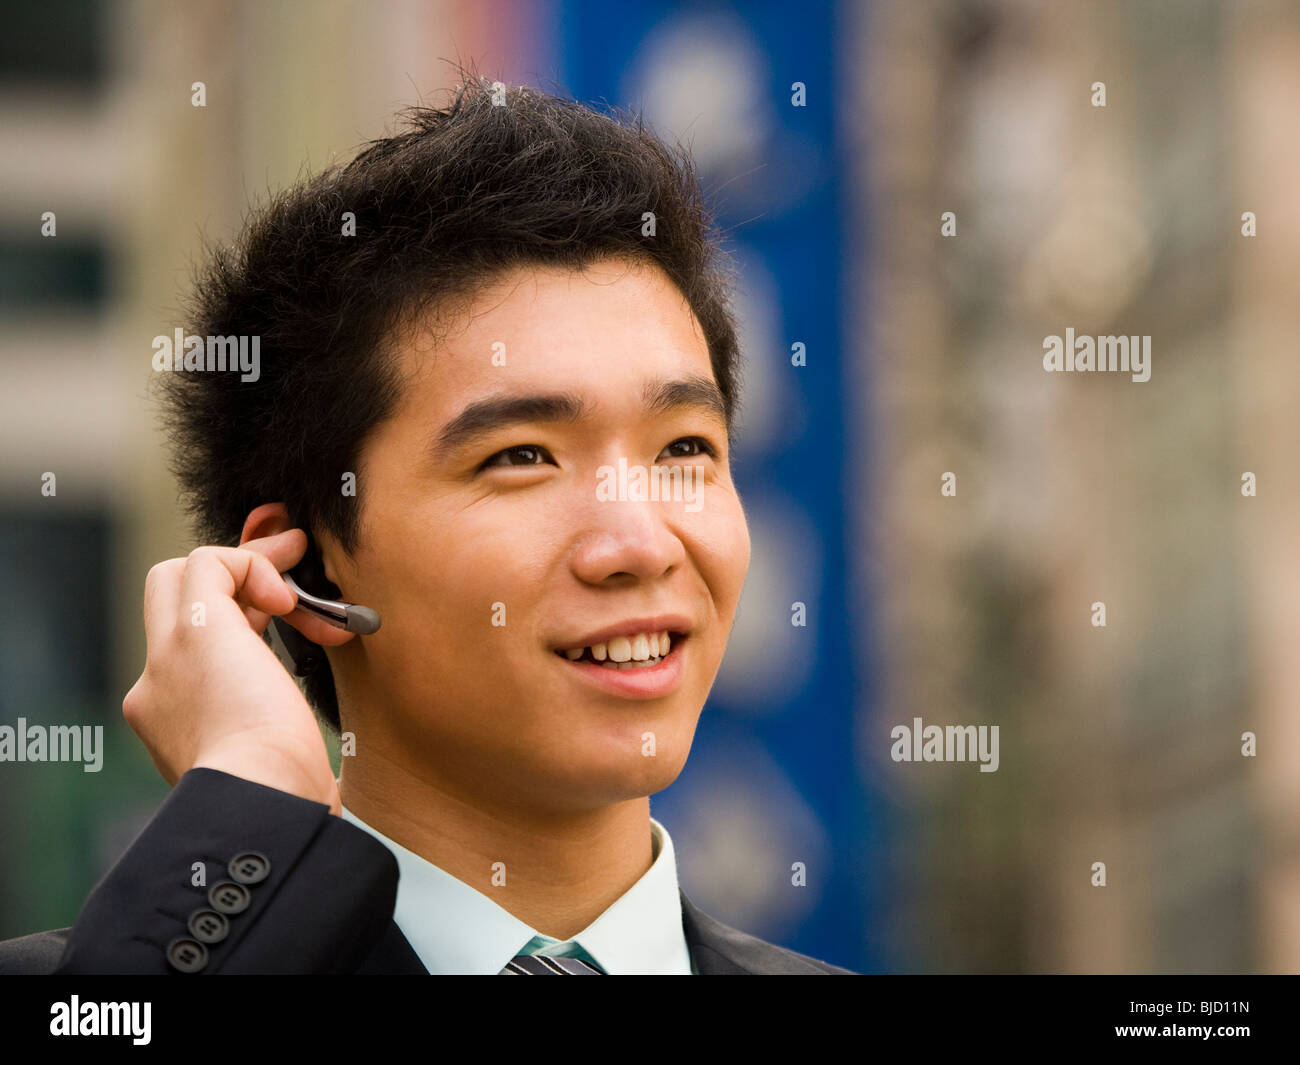 Man With A Cell Phone Earpiece Stock Photo Alamy